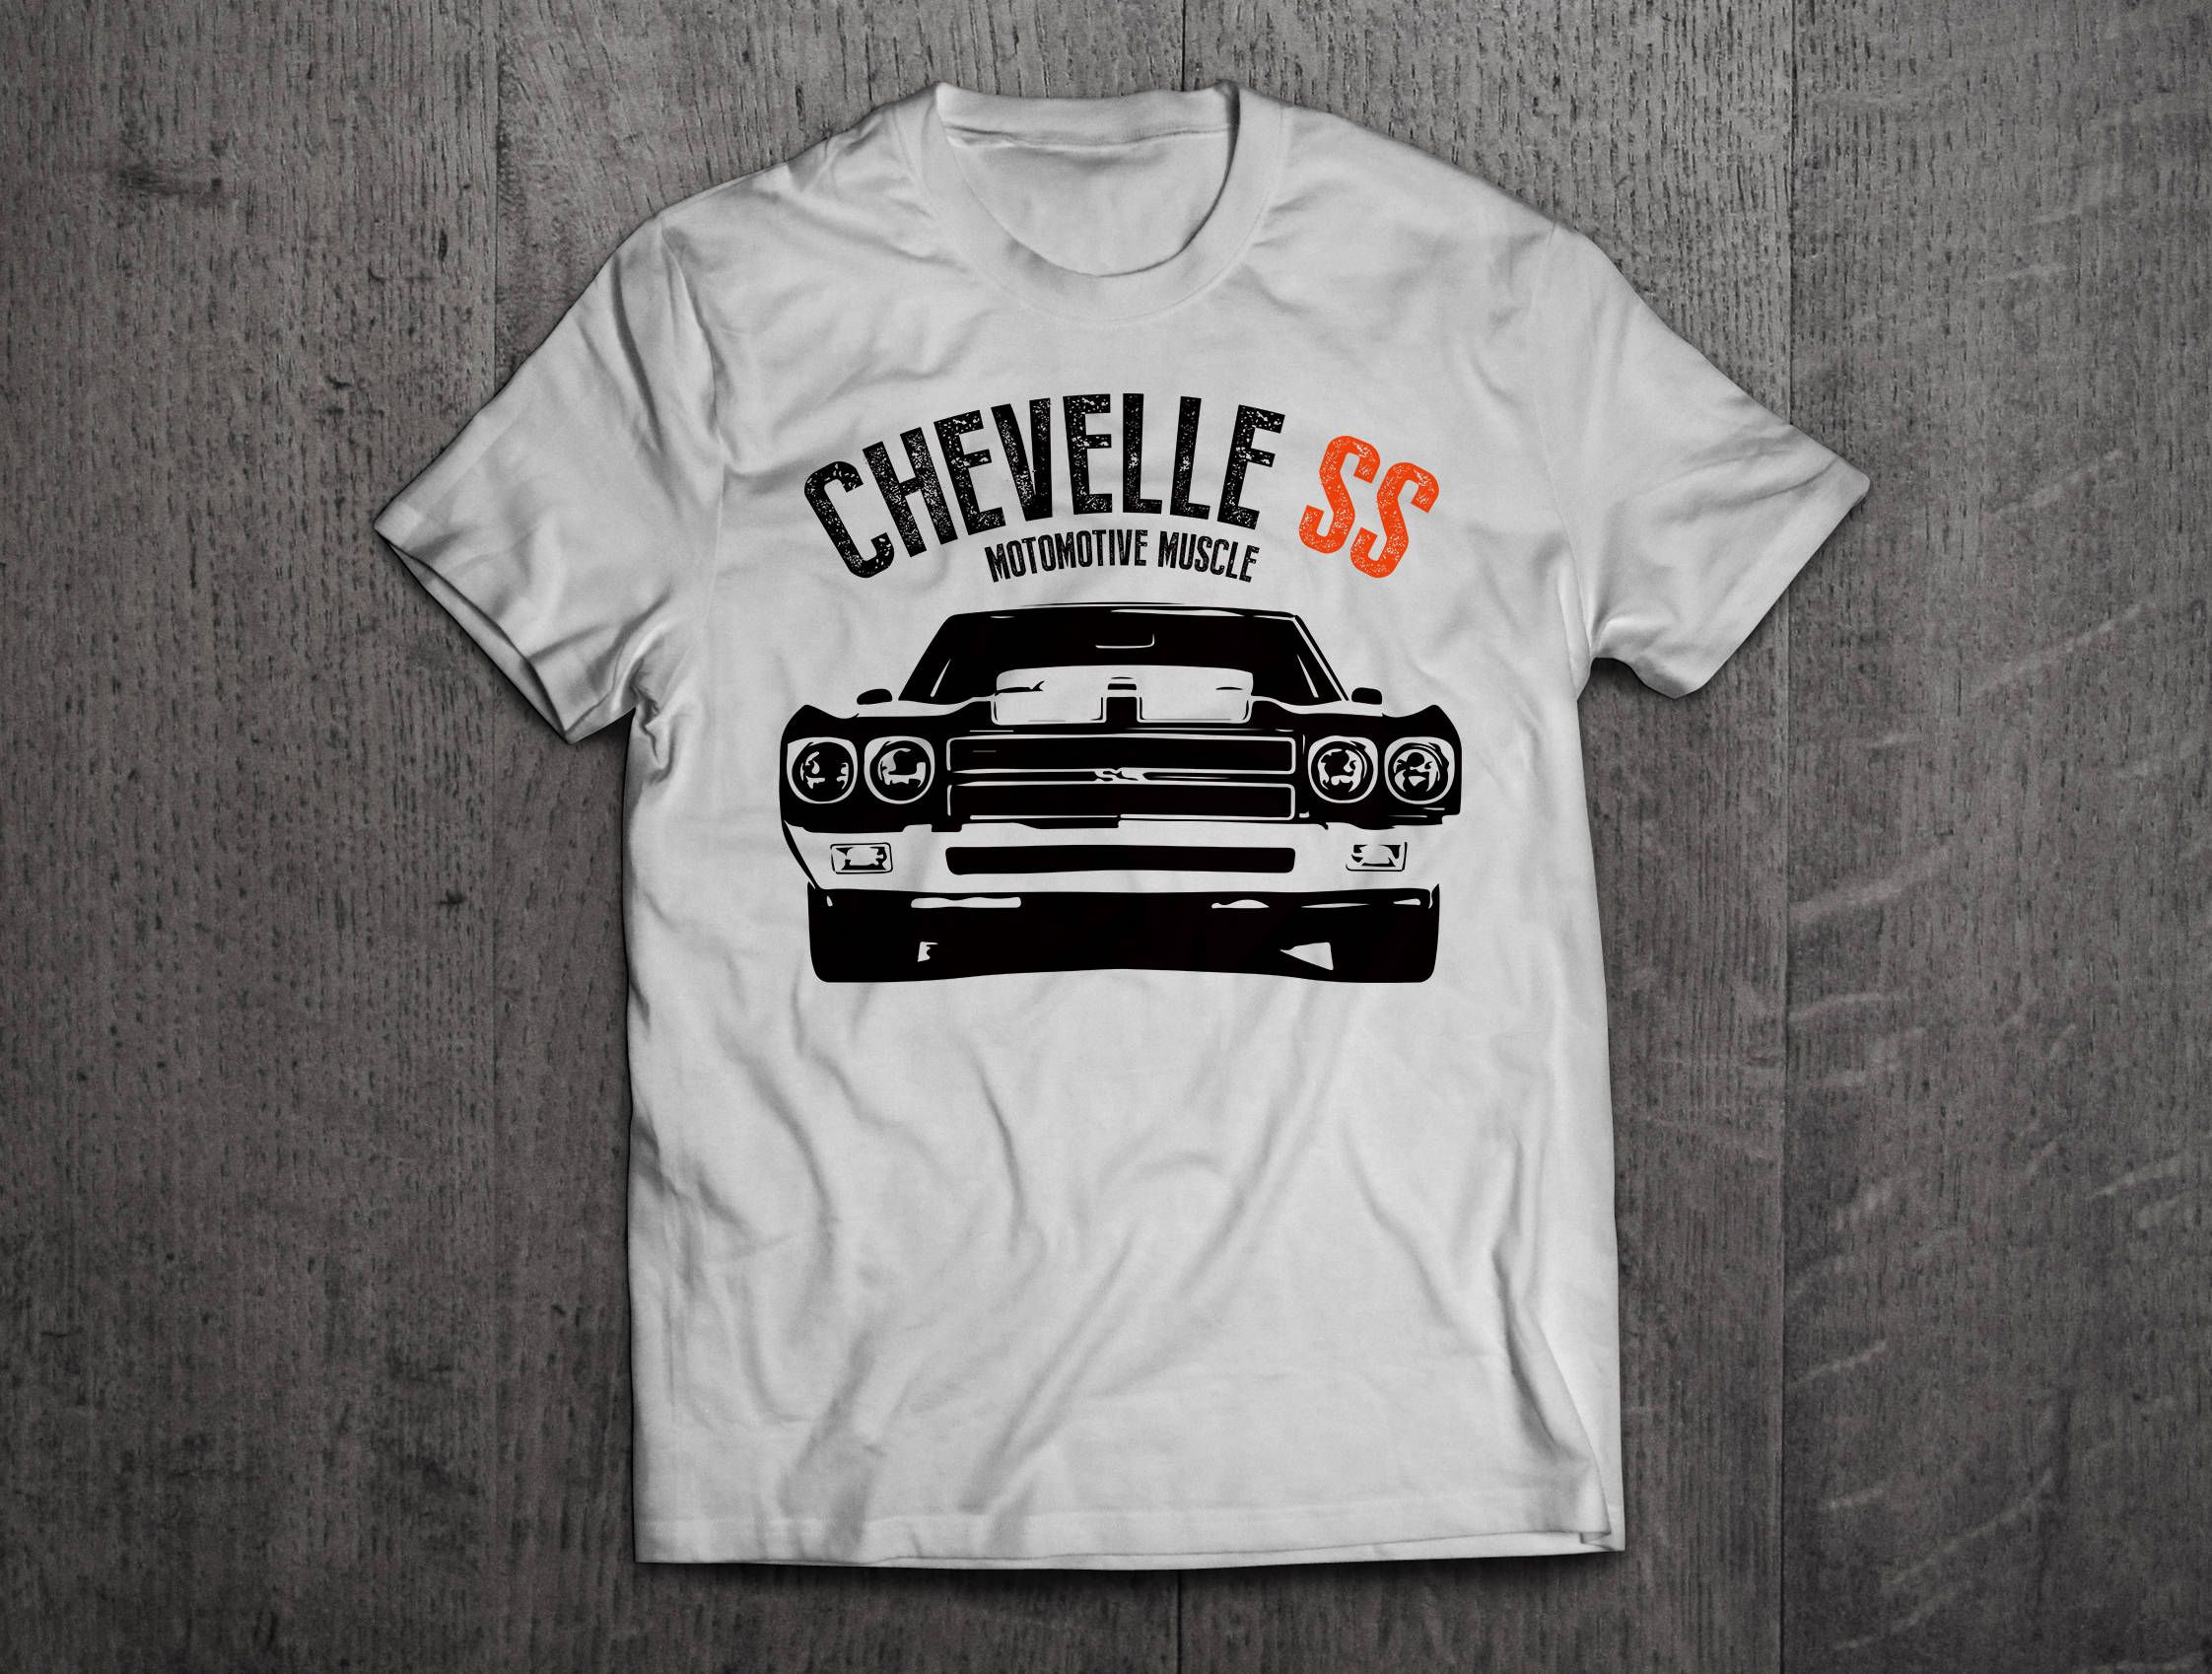 d7f4ff969 Chevy Chevelle Shirts, Chevy SS t shirts, Chevy shirts, Cars t shirts, men  tshirts, women t shirts, muscle car shirts, chevrolet shirts by  MotoMotiveInk on ...